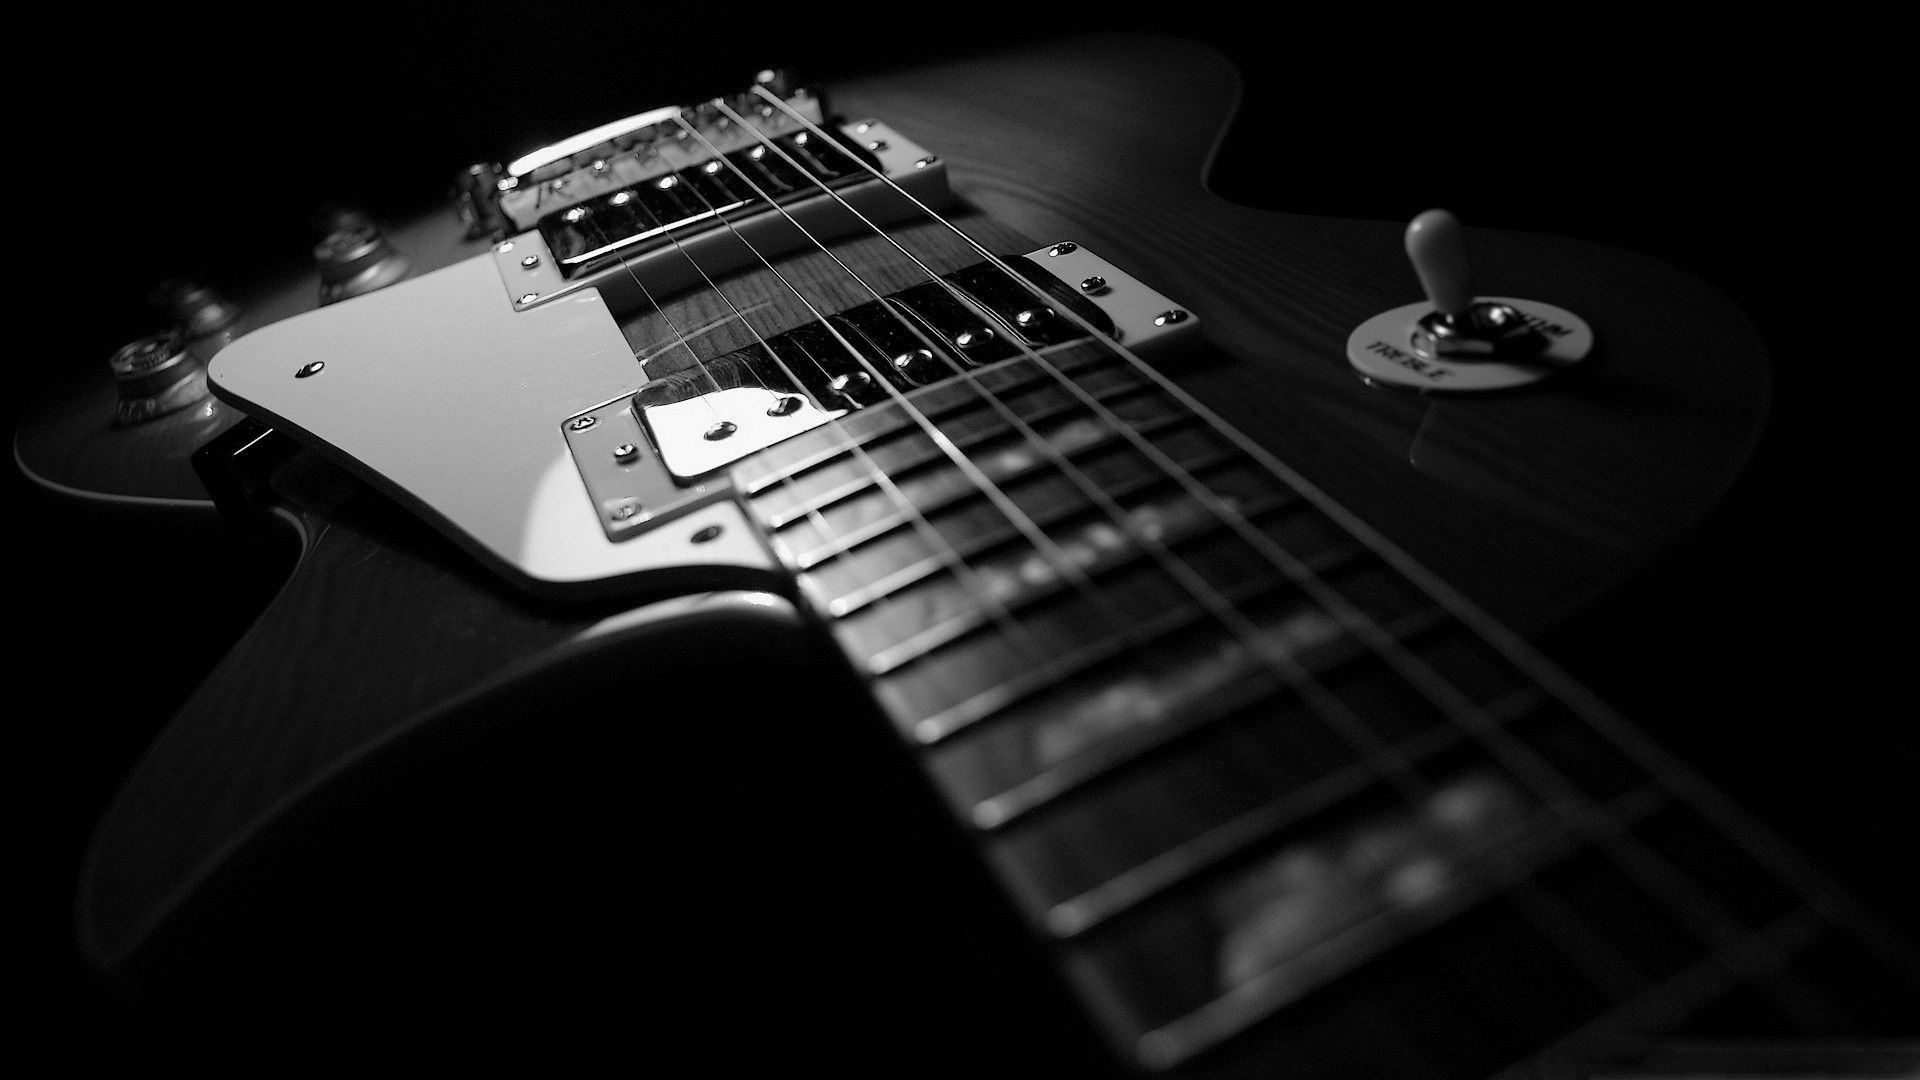 guitar wallpapers hd wallpaper hd wallpapers pinterest